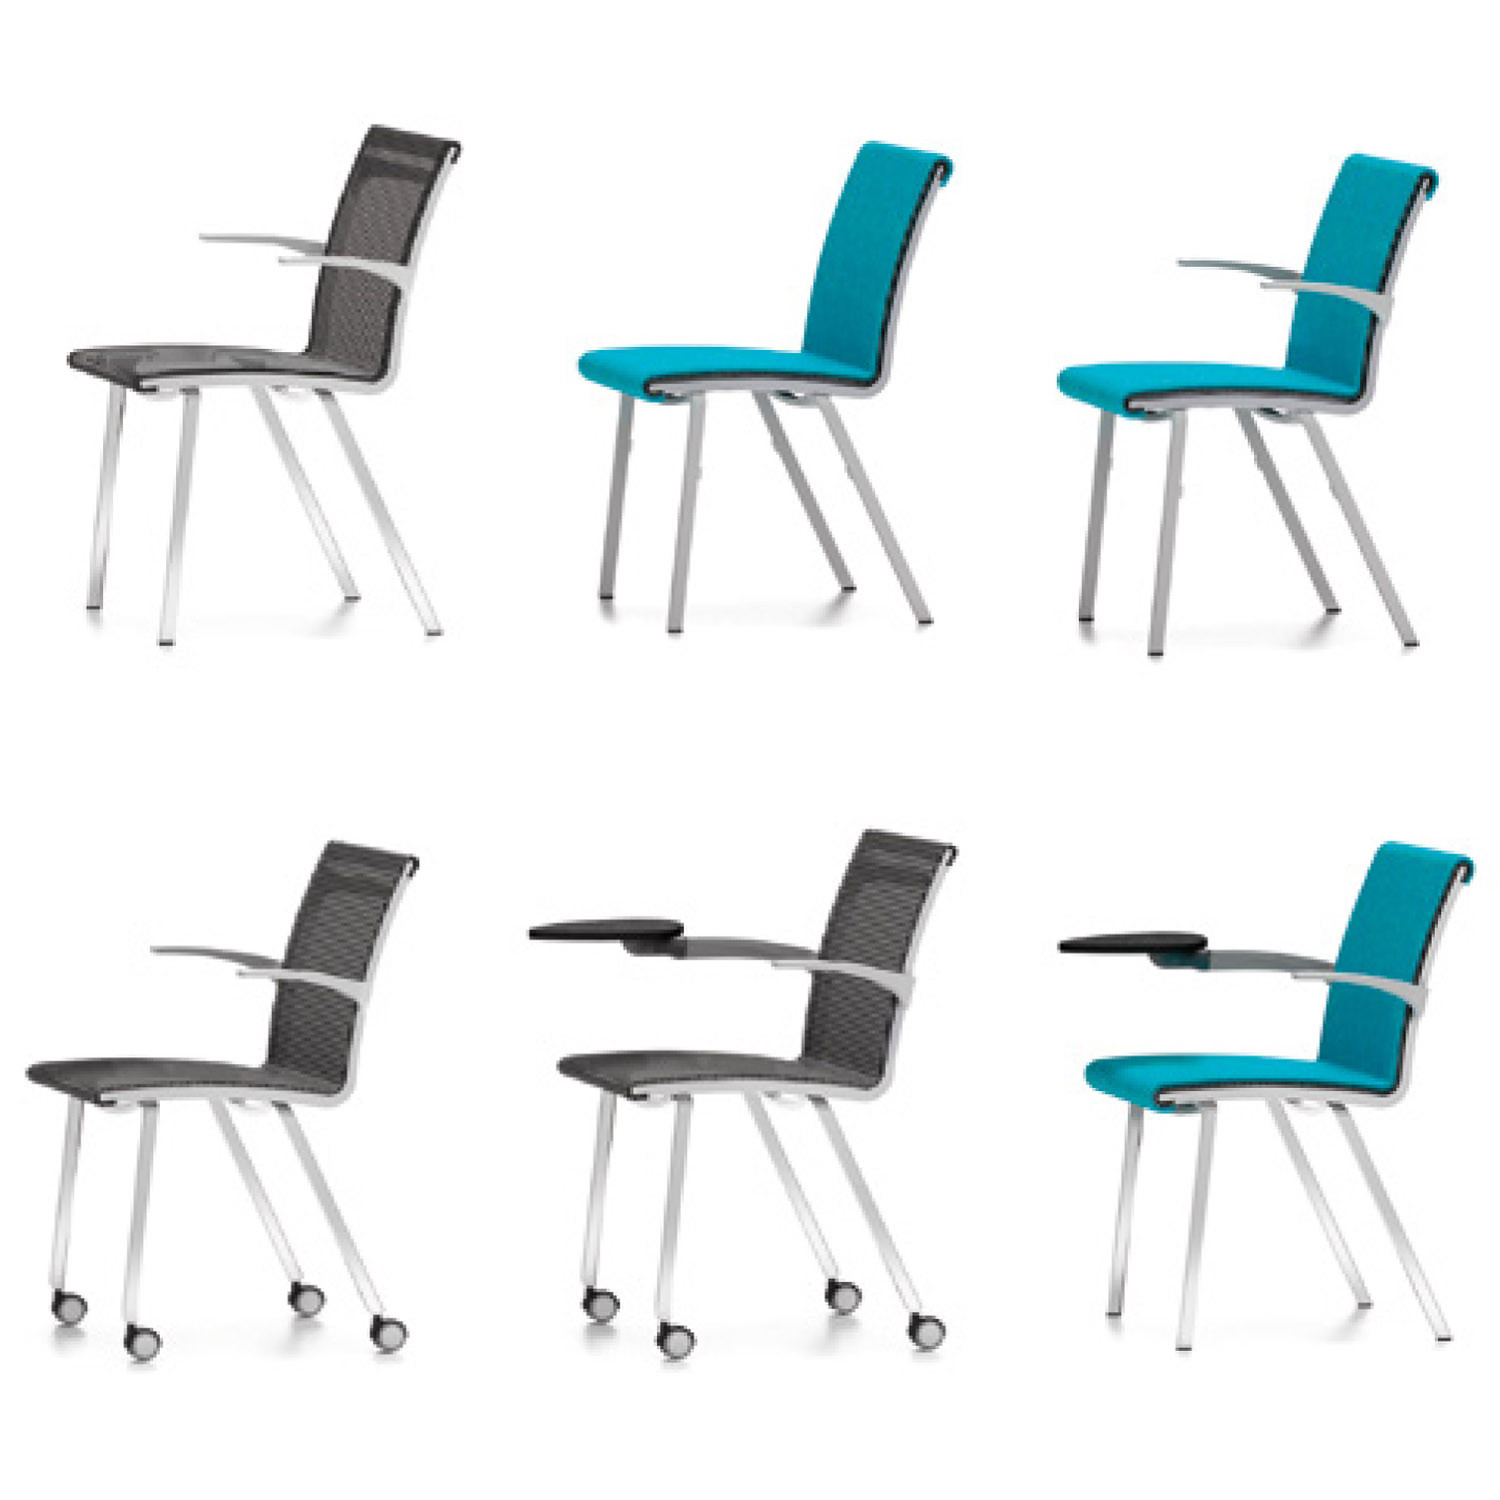 Martin Ballendat Bond Training Chairs